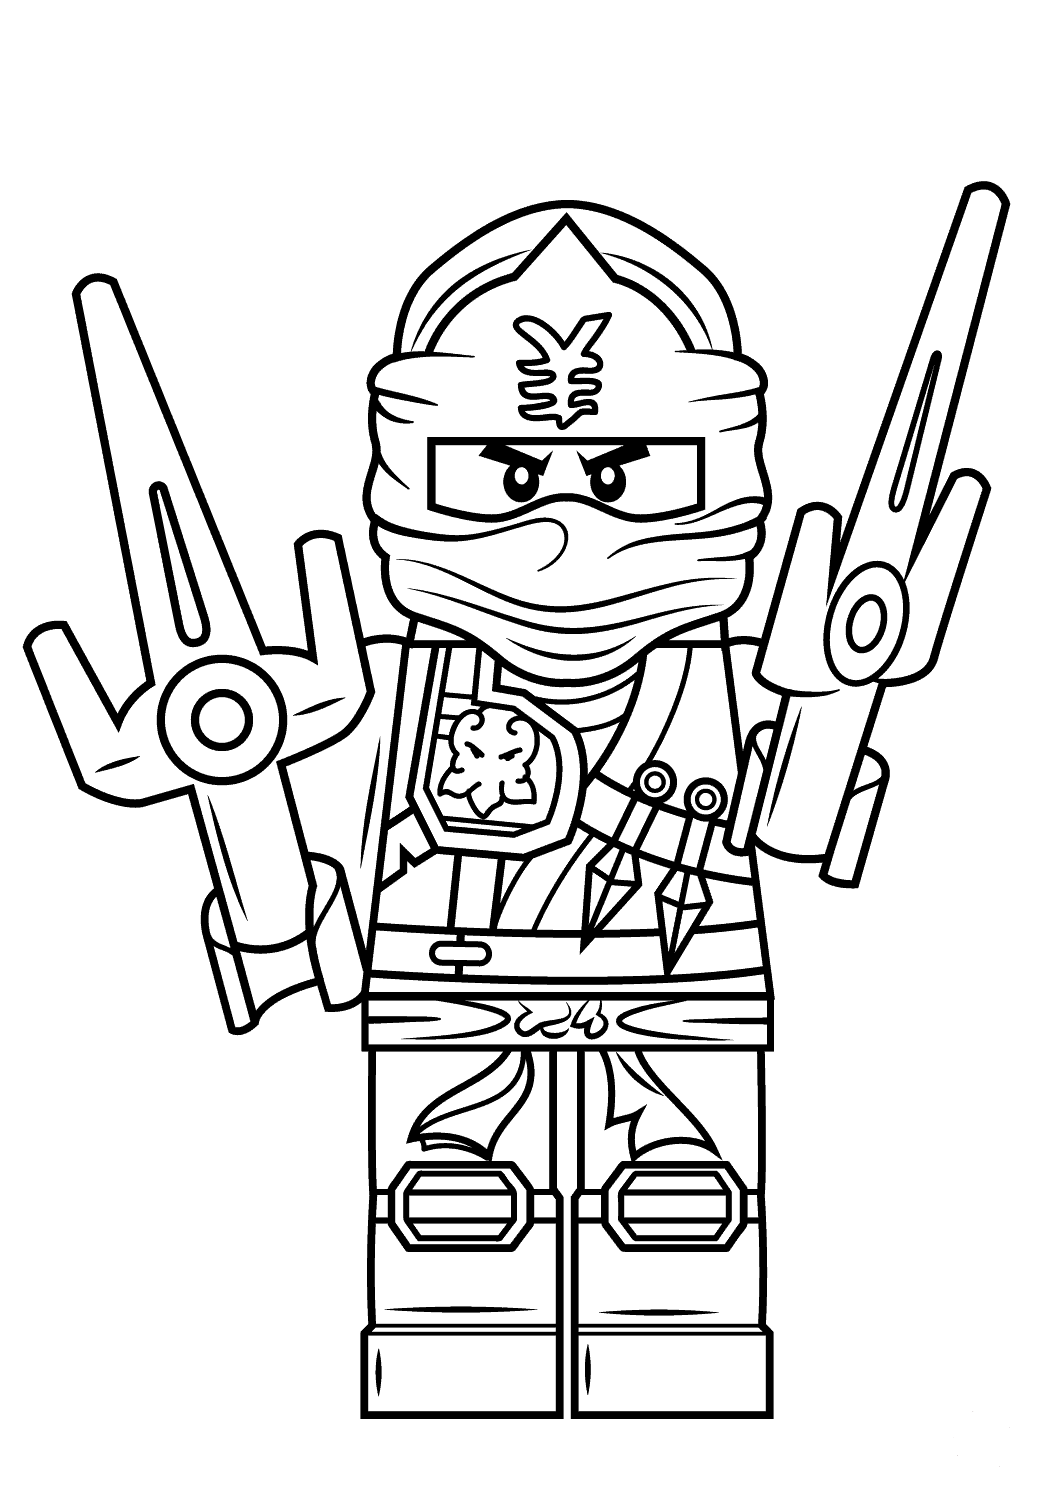 ninja go coloring 14 ninjago coloring pages kai for kids visual arts ideas go ninja coloring